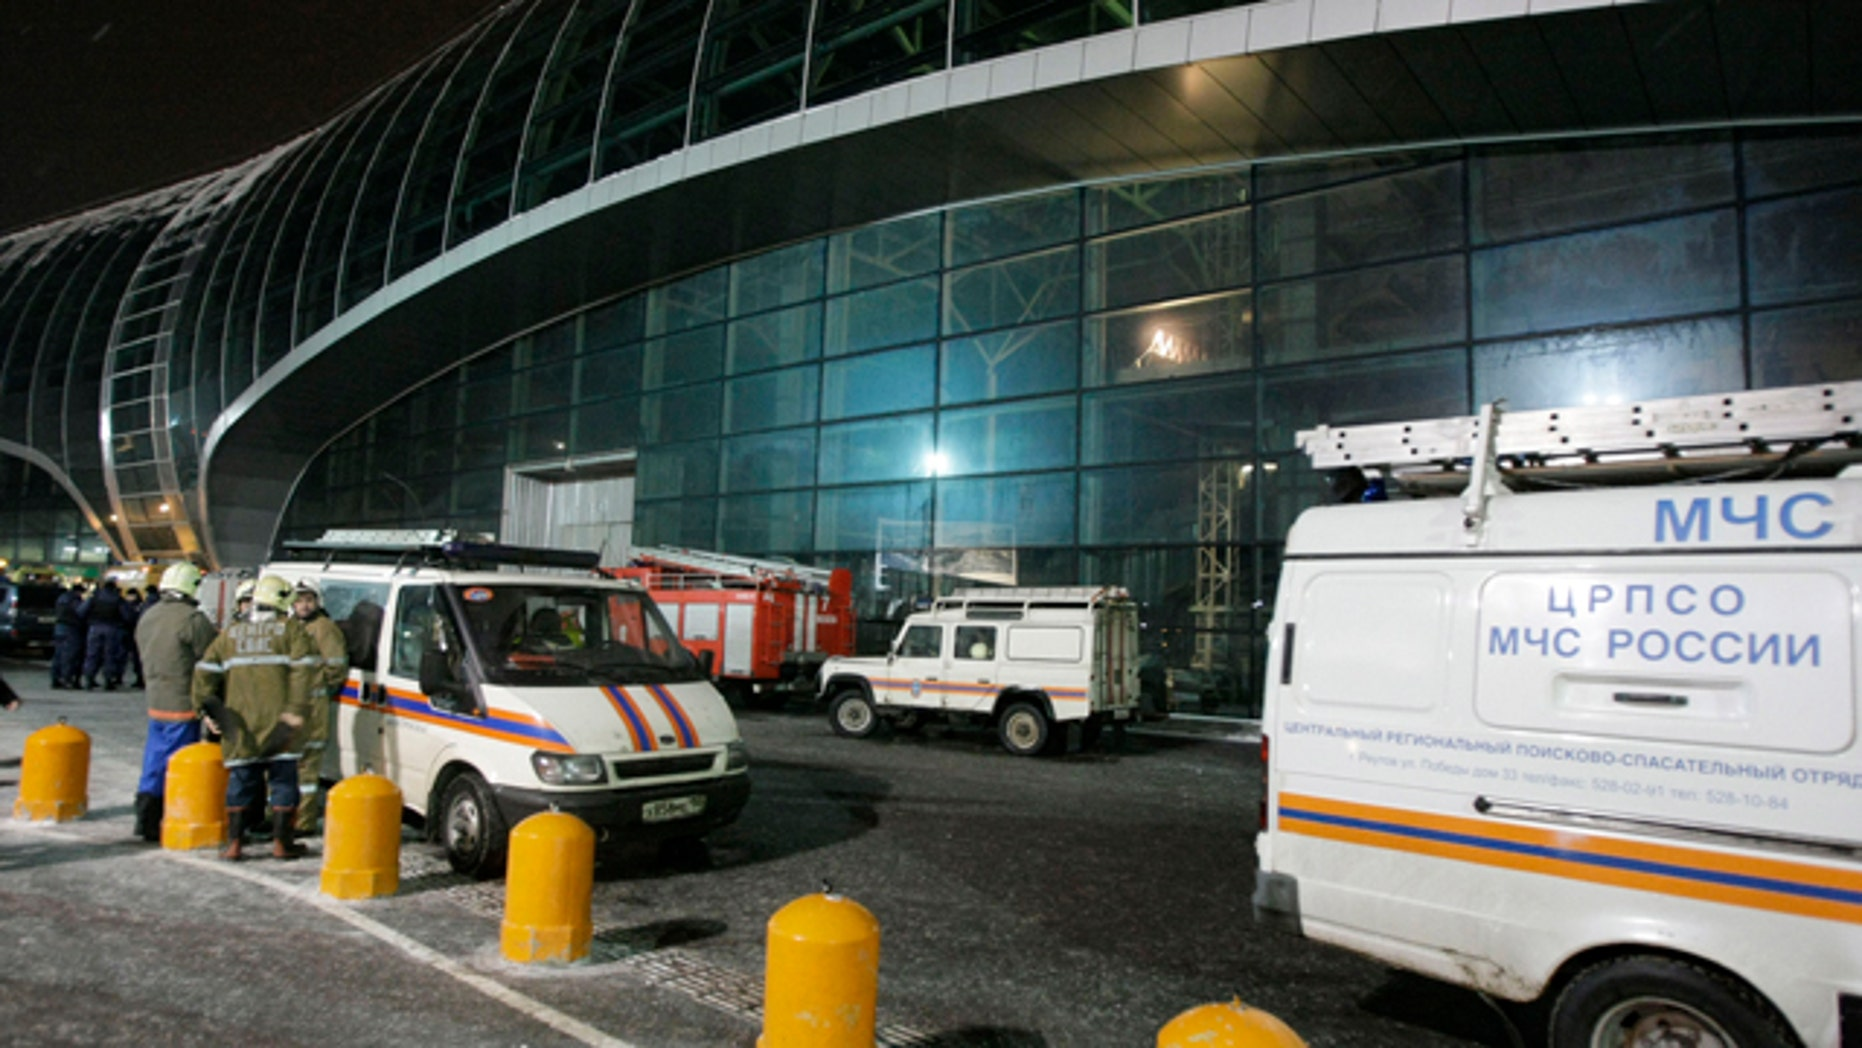 Jan. 24: Fire engine and emergency vehicles are seen outside a terminal at Domodedovo airport, Moscow.